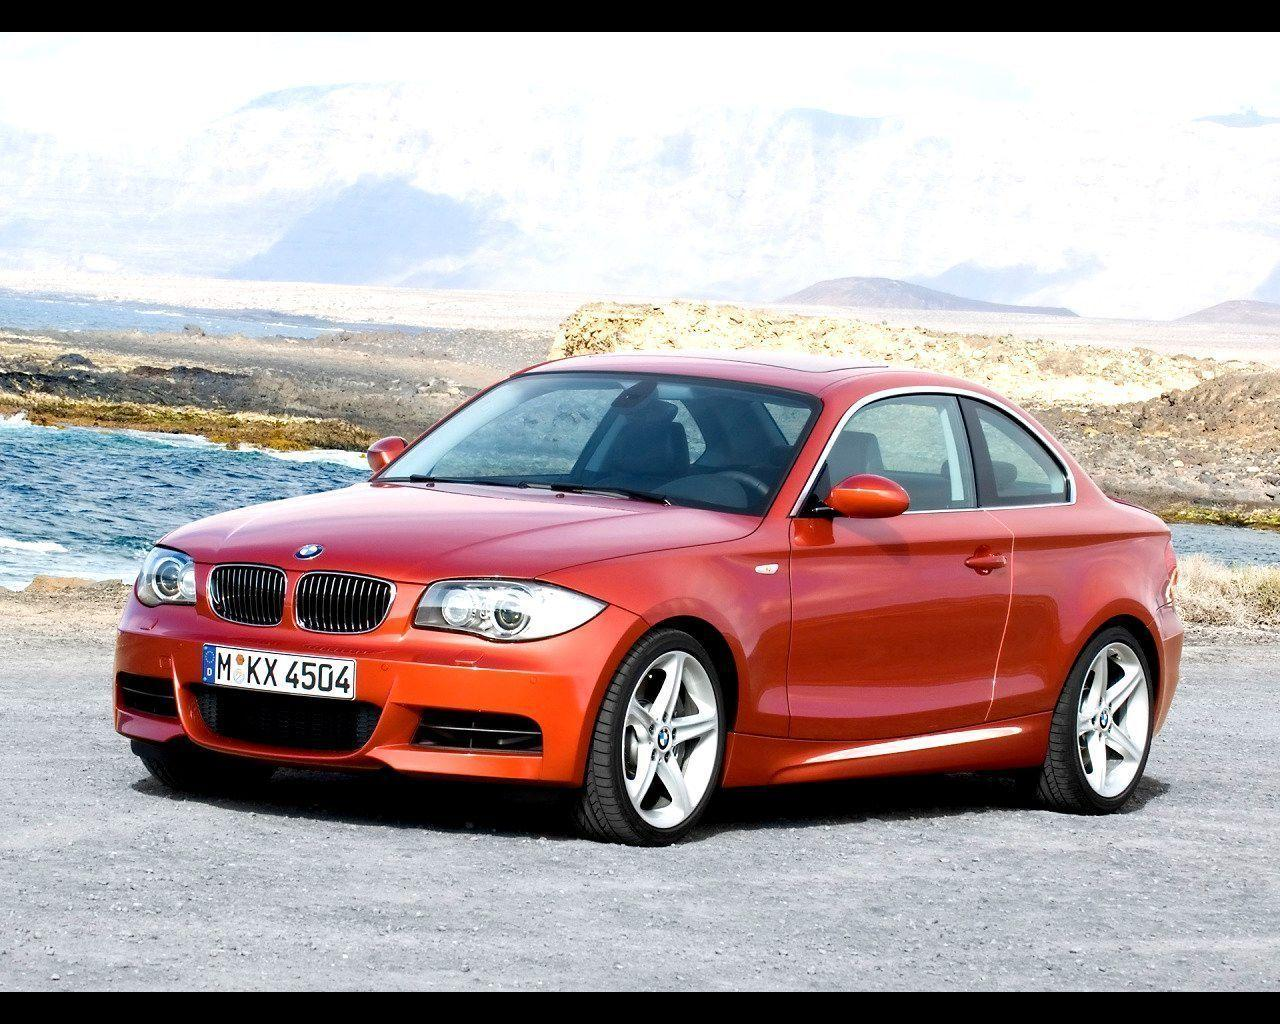 2008 BMW 1 Series Coupe Wallpaper 06 - 1280x1024